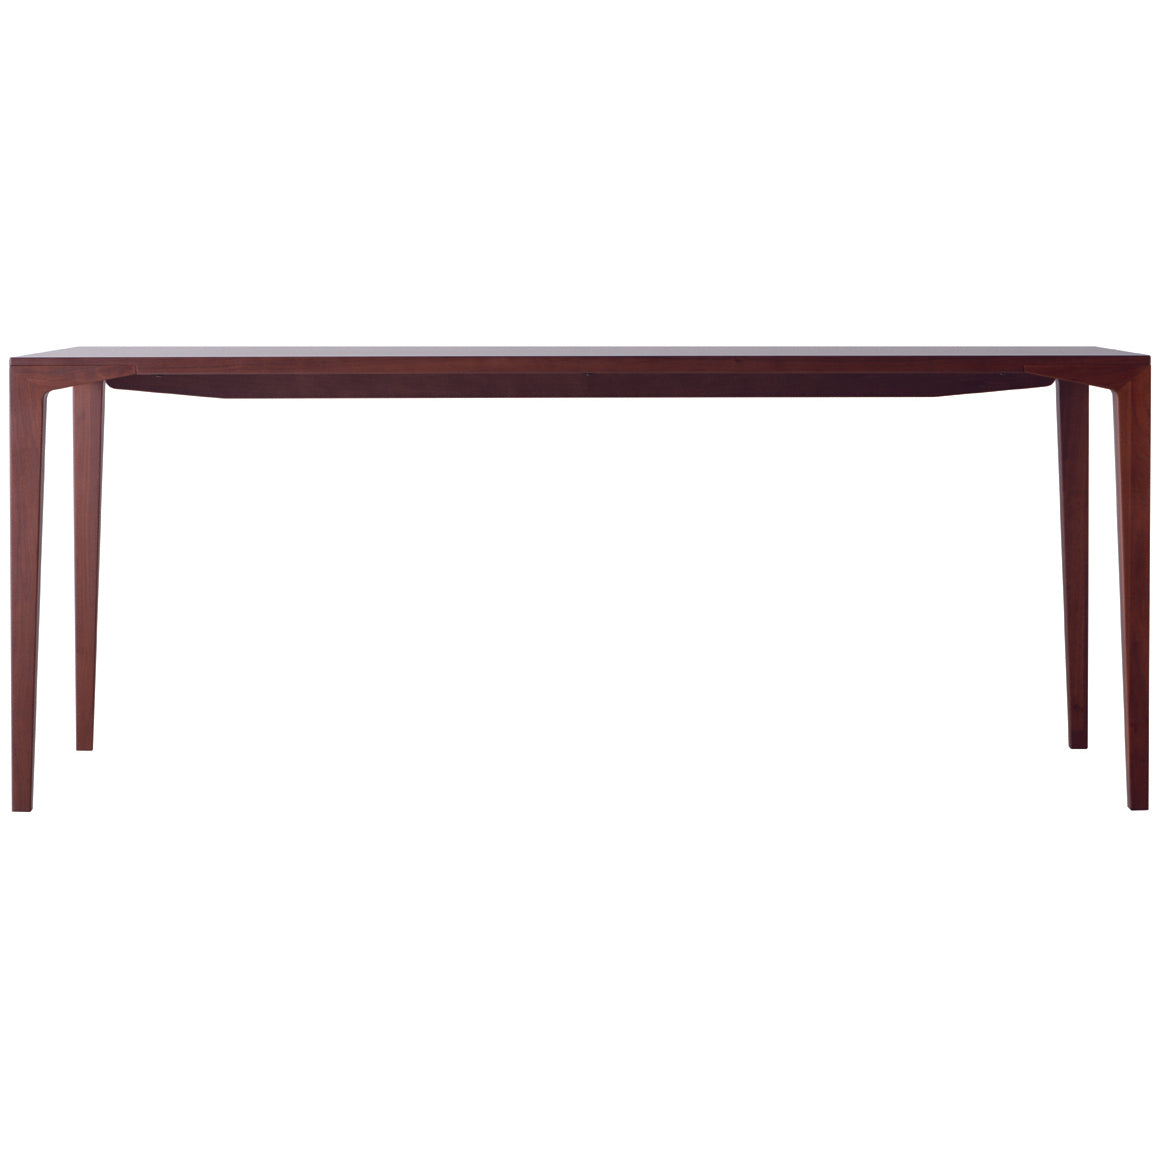 Nissin - Forms J Dining Table - Dining Table